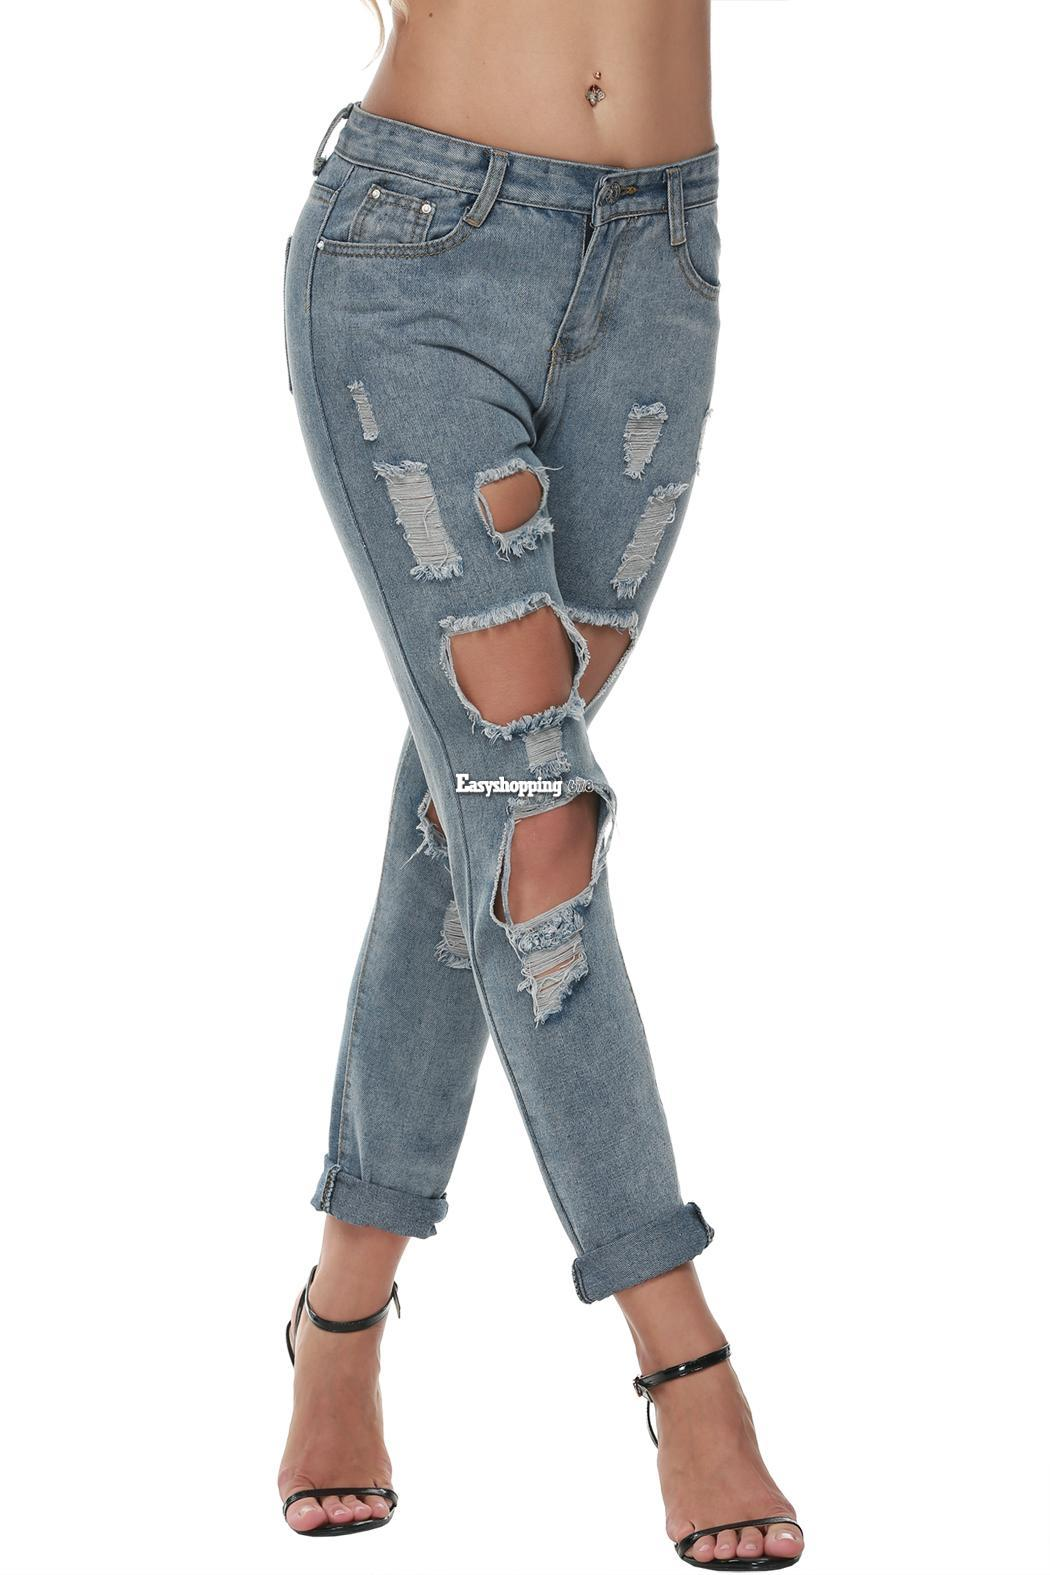 Distressed Women's Jeans with Youthful Appeal Distressed jeans are totally in. From slimming skinnies with holes at the knee to frayed boyfriends that fit just right, Old Navy has the distressed women's jeans you need to stay on-trend and show off your individual style.